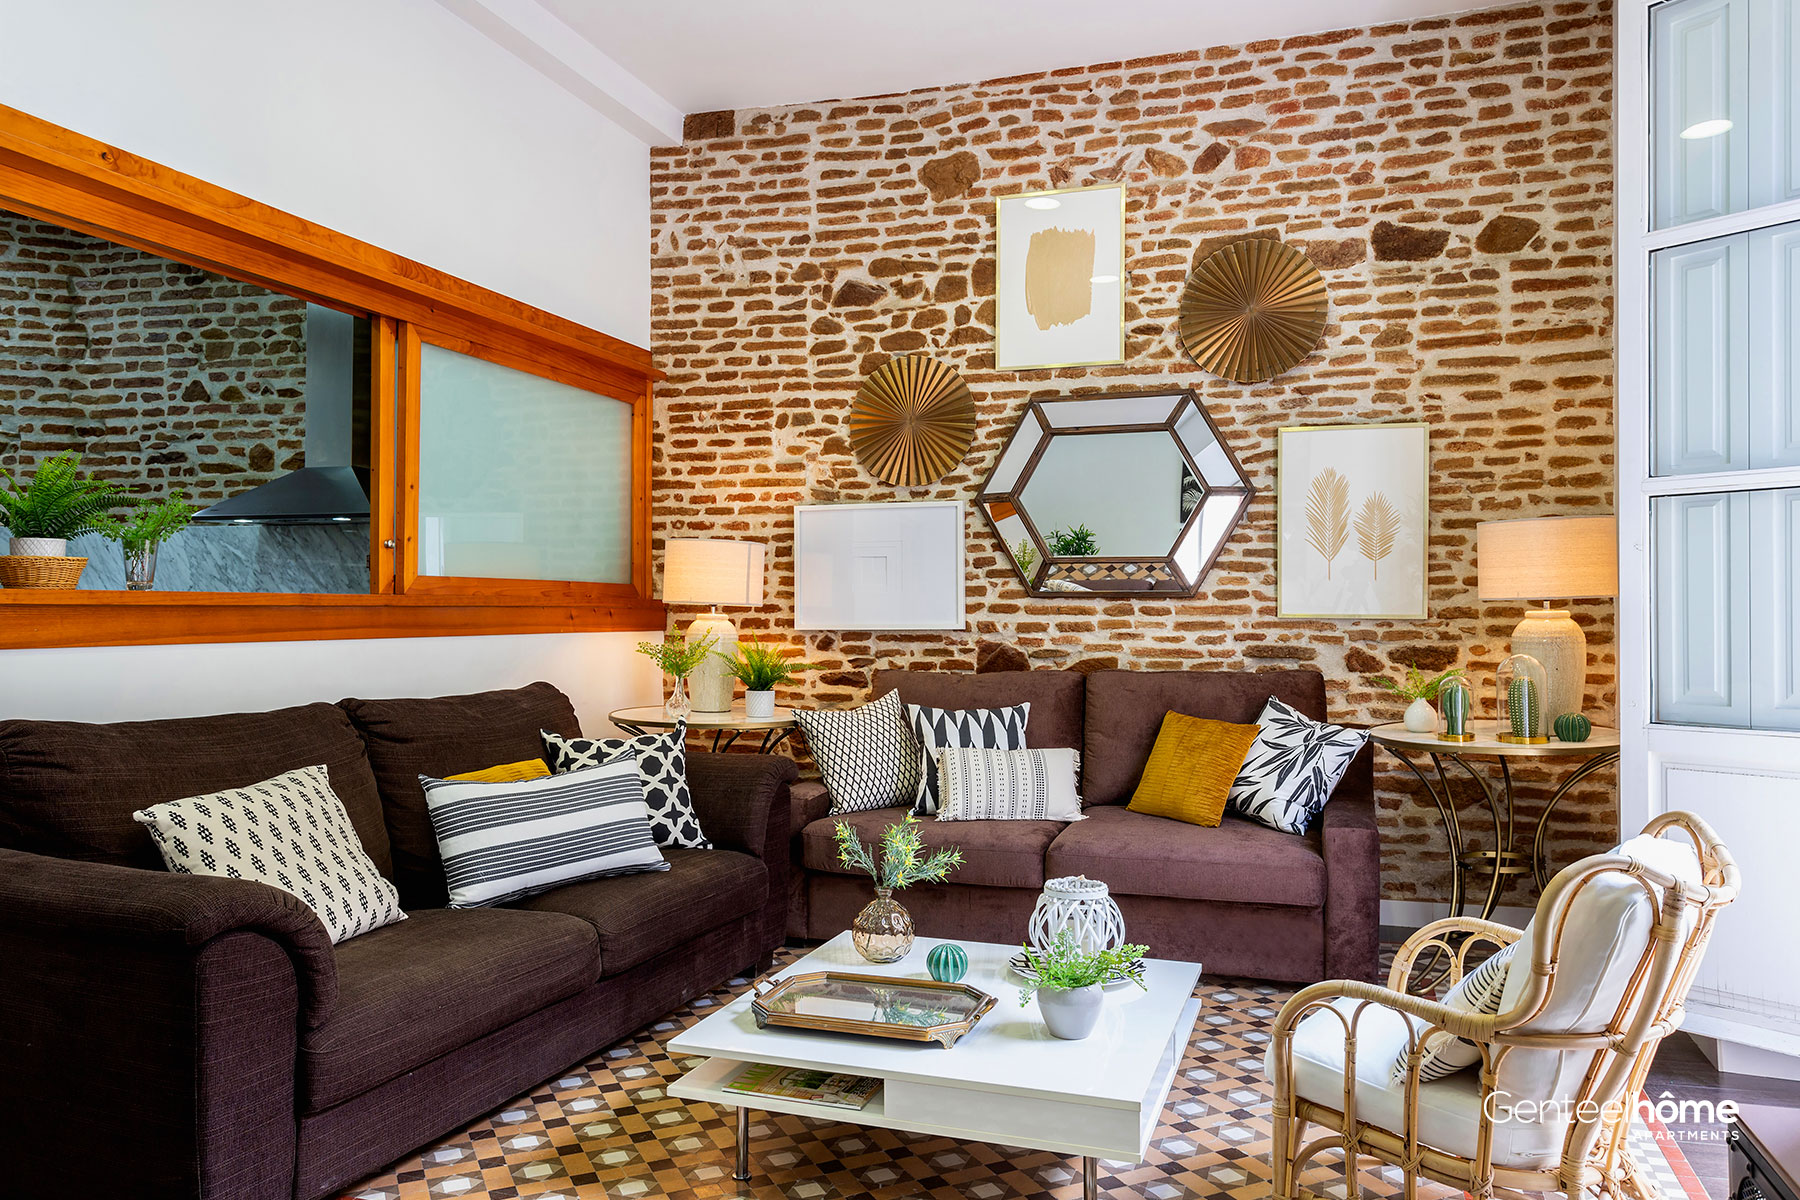 apartment-Larios-photo5